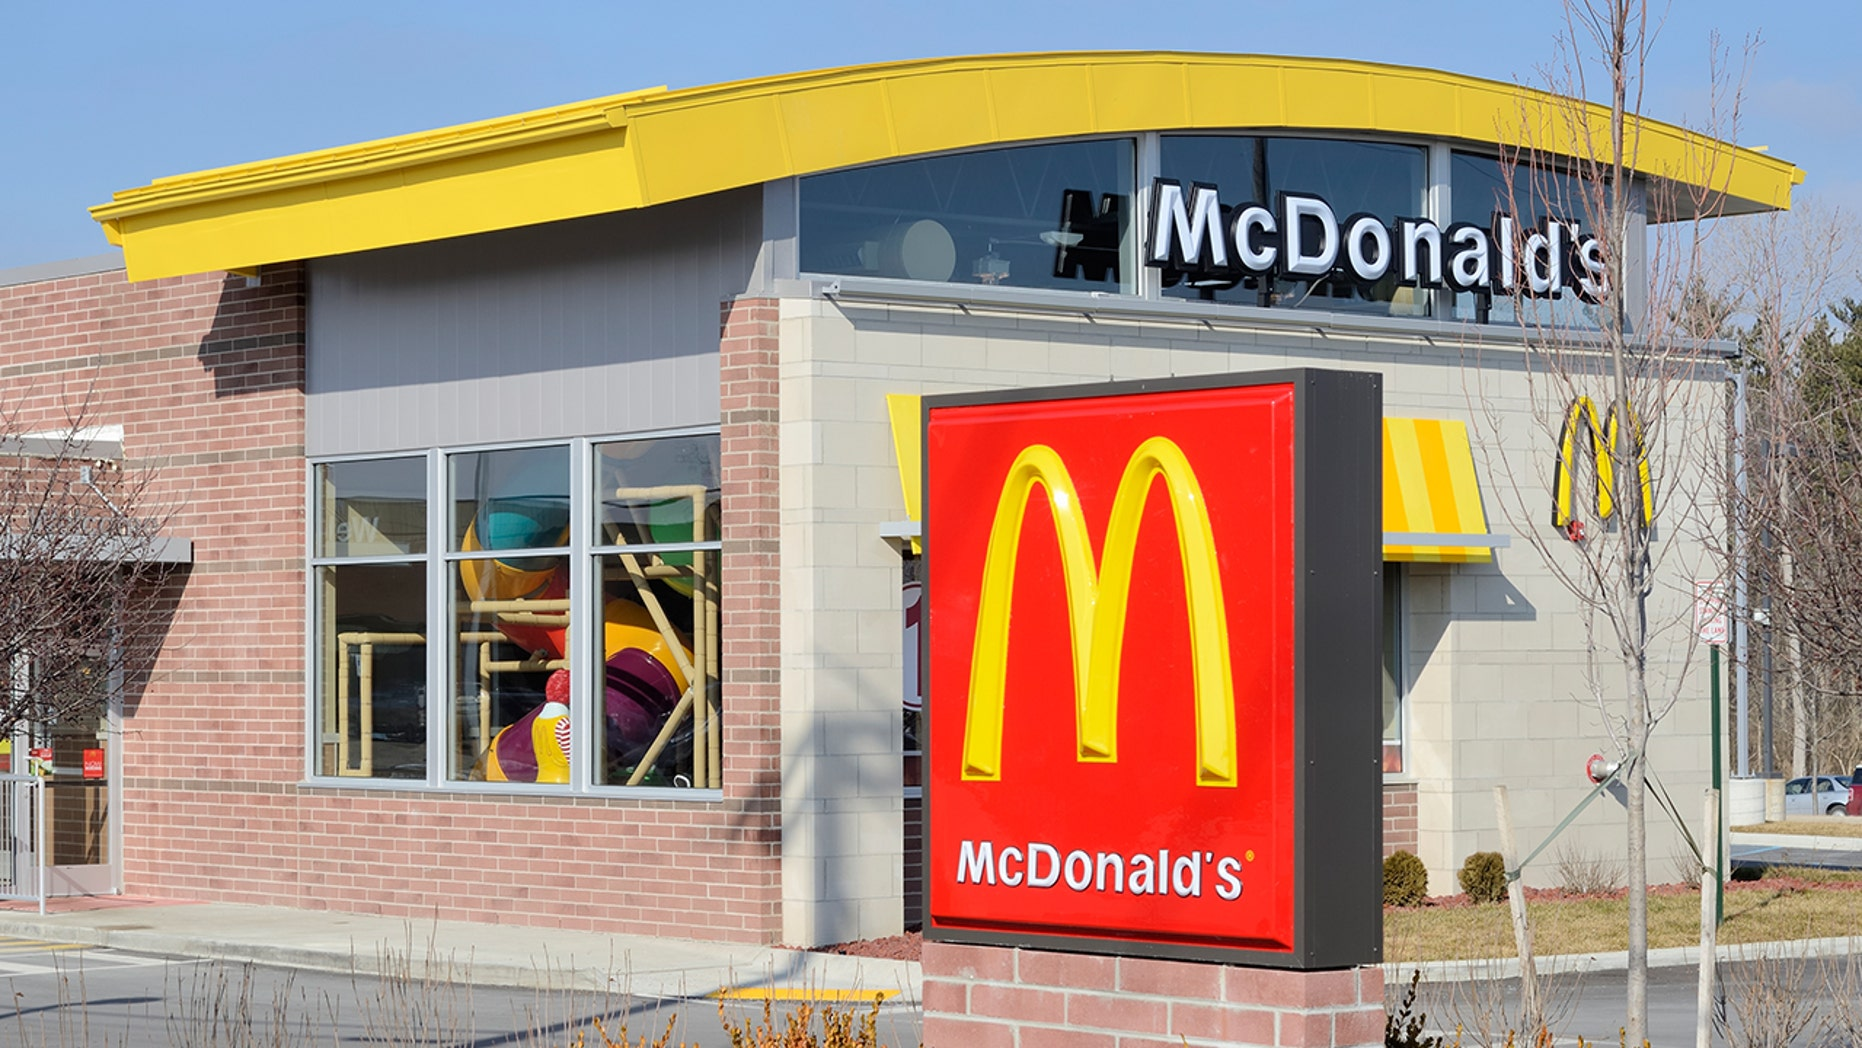 McDonald's now offers delivery through UberEATS from over 1,000 locations nationwide.